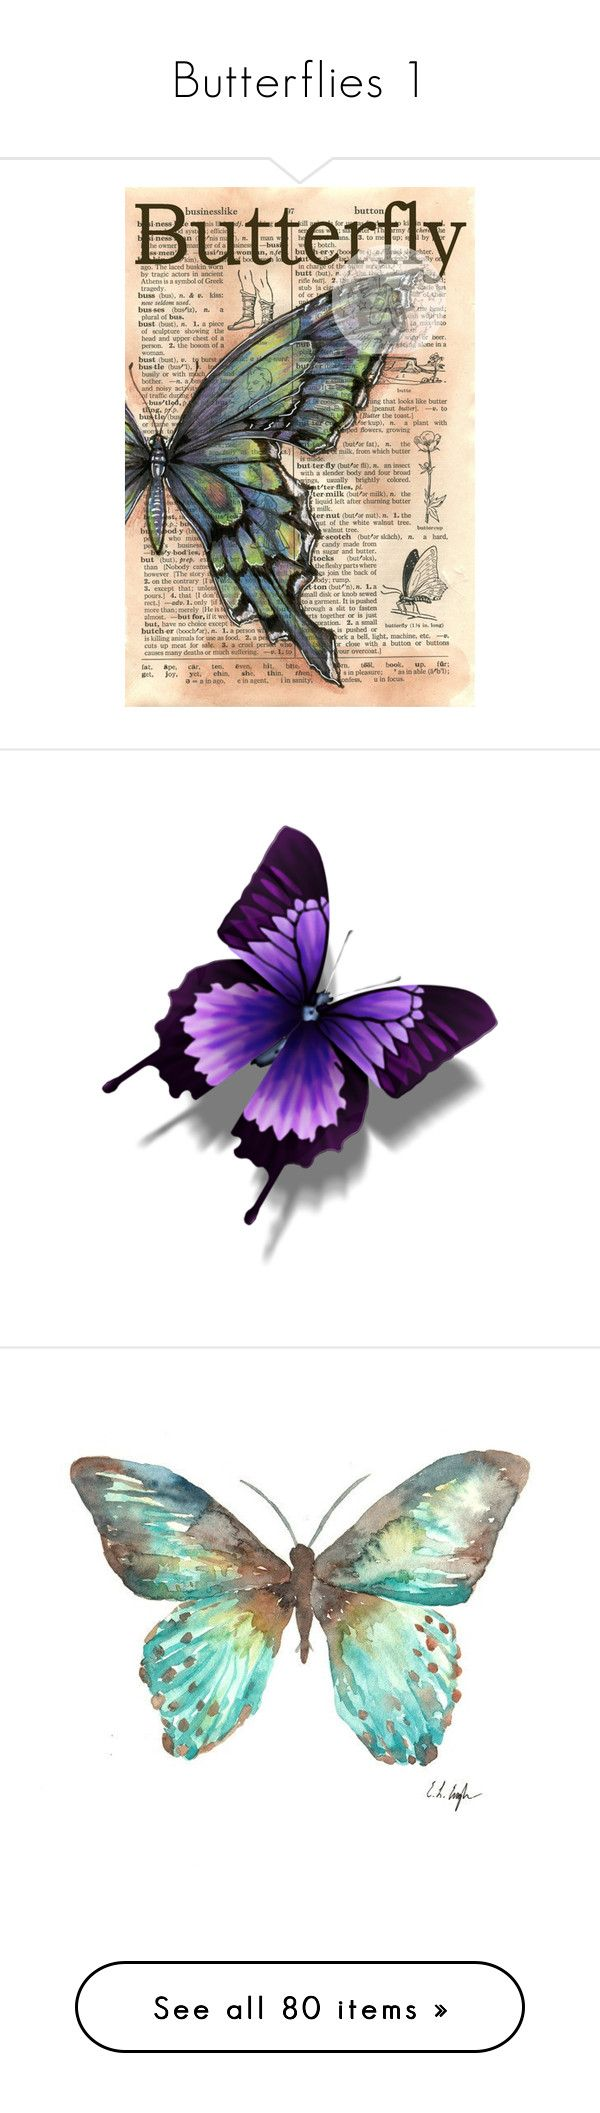 """Butterflies 1"" by artsygal ❤ liked on Polyvore featuring home, home decor, wall art, backgrounds, butterflies, art, fillers, paper, aqua home decor and distressed home decor"